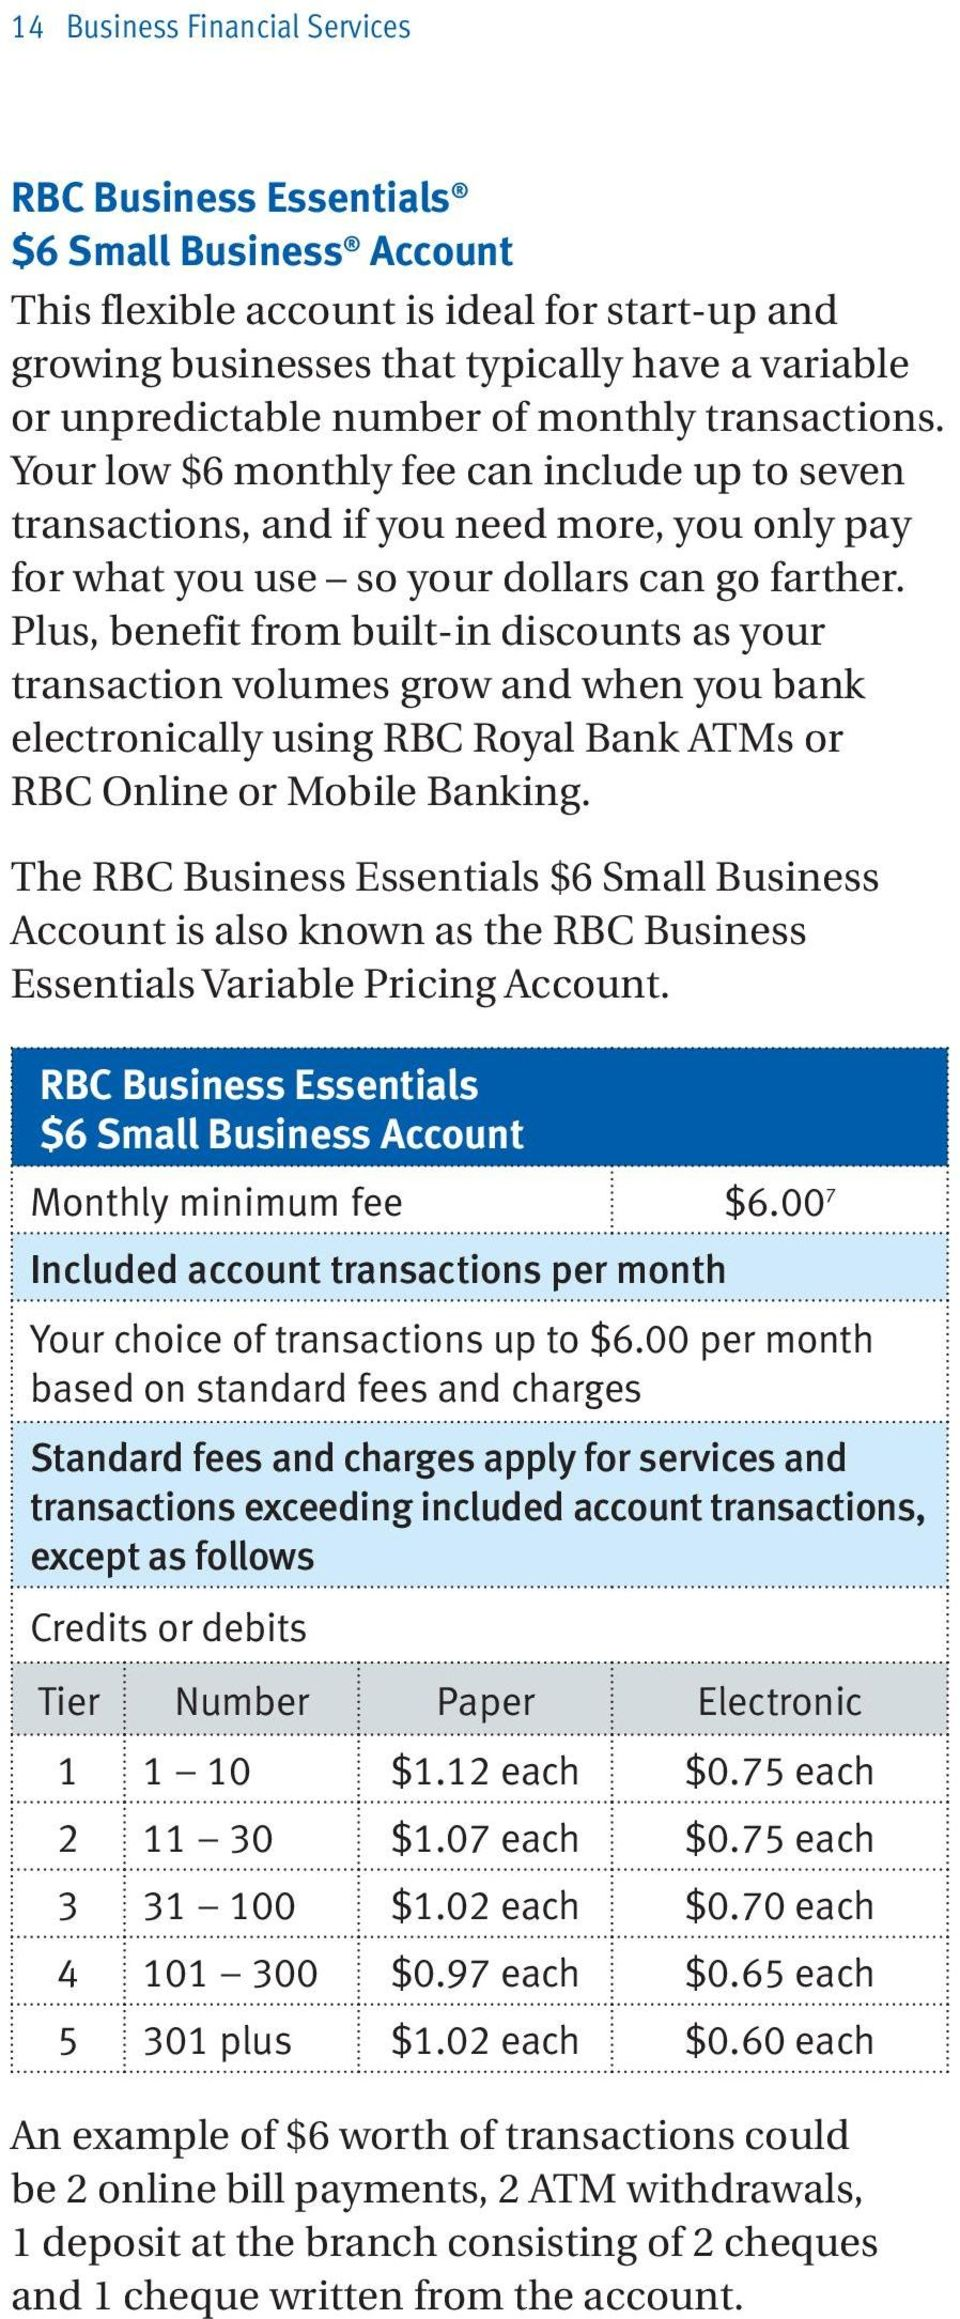 Plus, benefit from built-in discounts as your transaction volumes grow and when you bank electronically using RBC Royal Bank ATMs or RBC Online or Mobile Banking.